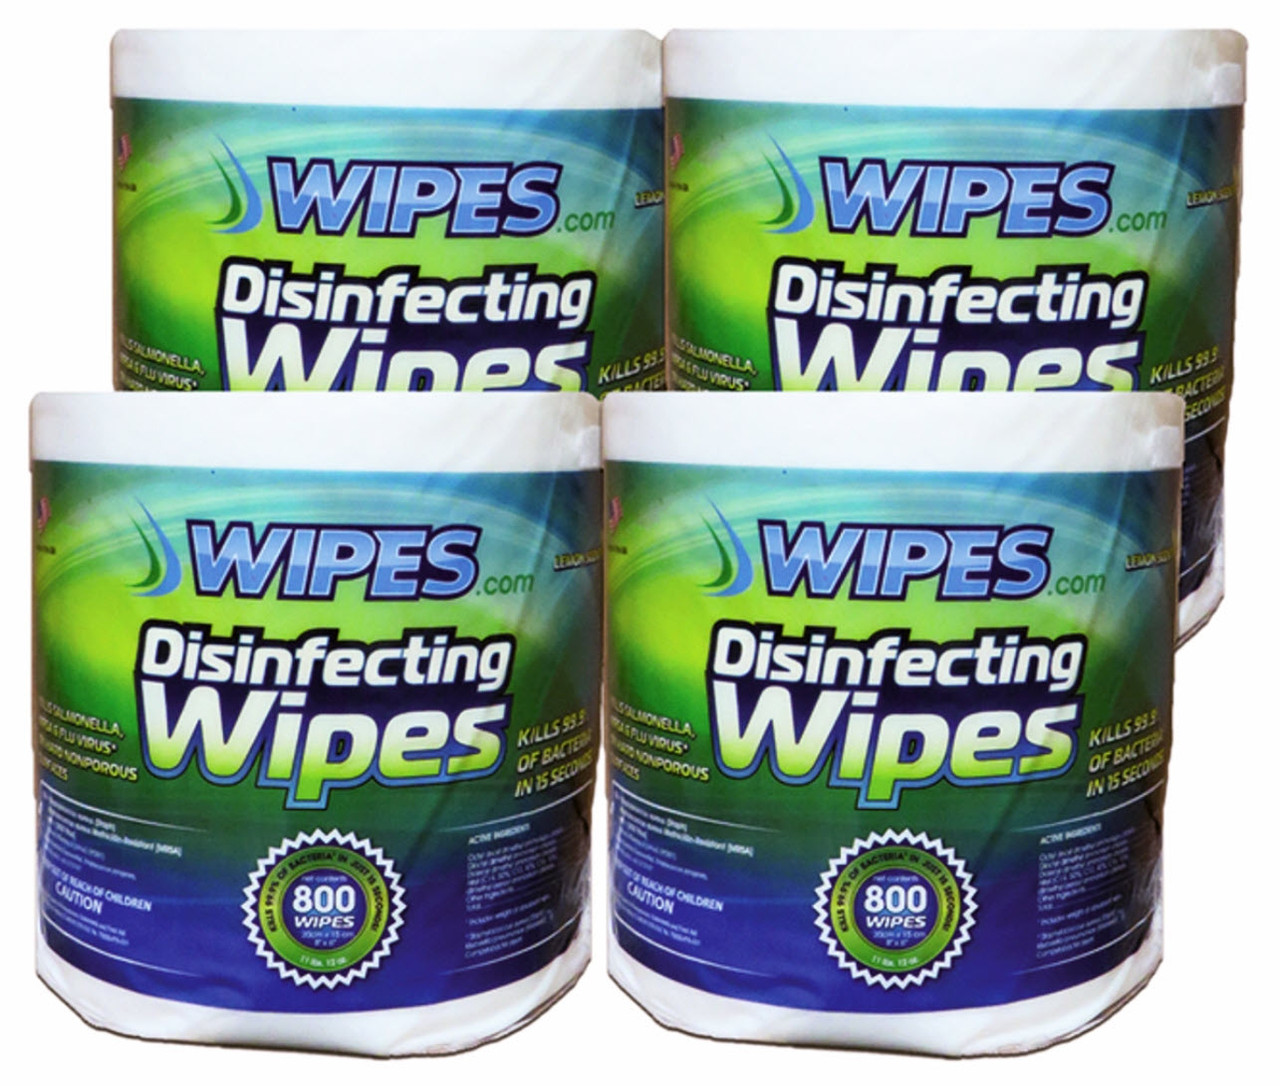 Wipes.com Disinfecting Wipes Pallet - 36 Boxes